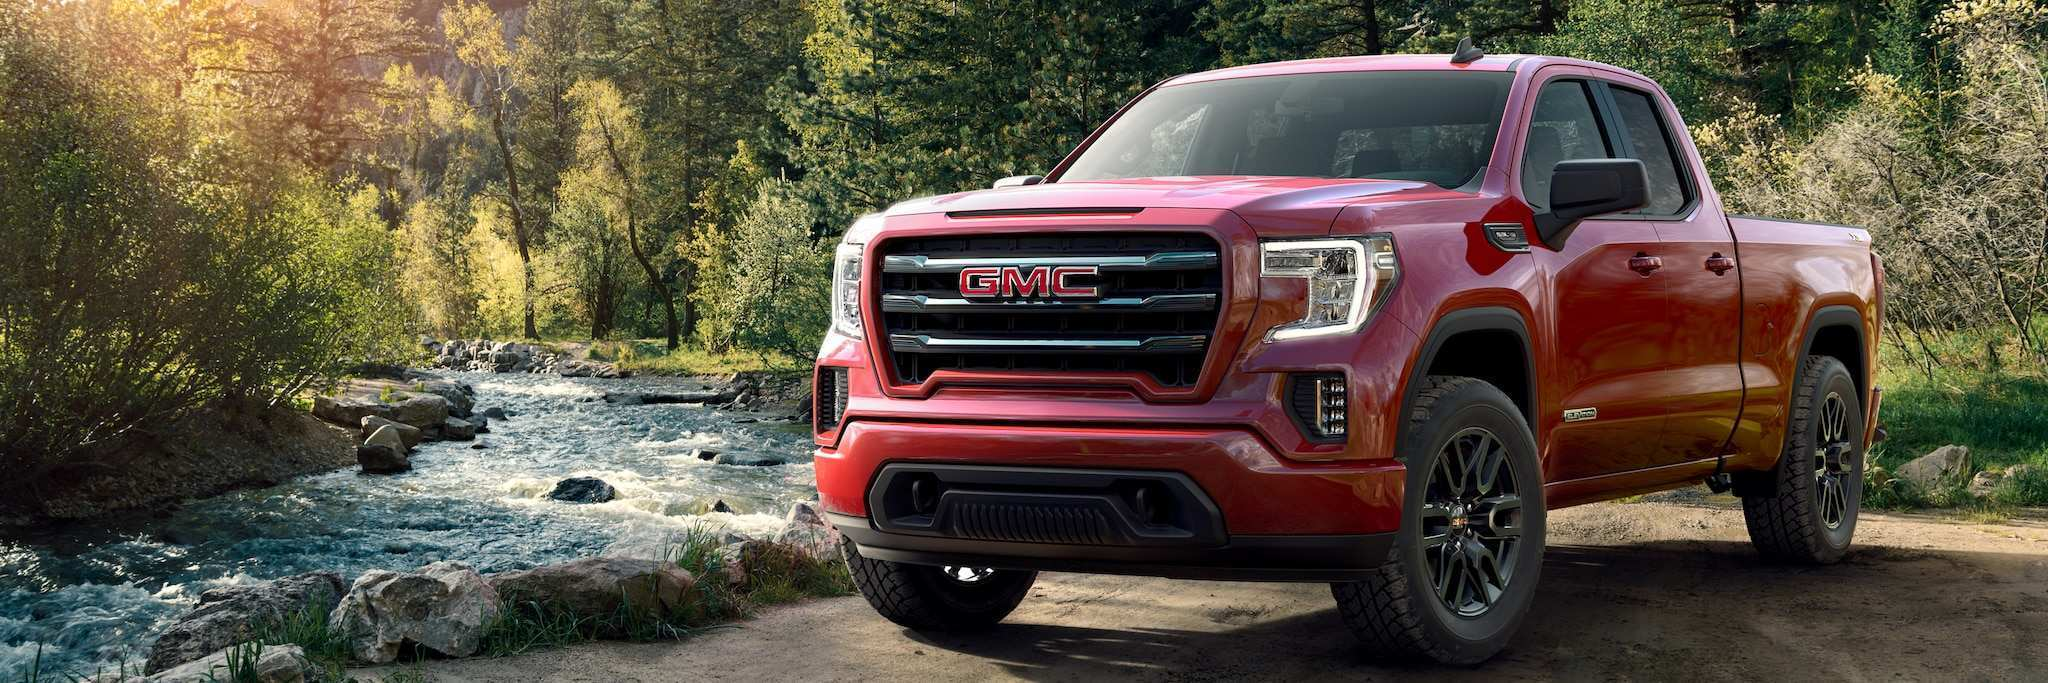 95 The Best 2019 Gmc 1500 Specs Specs